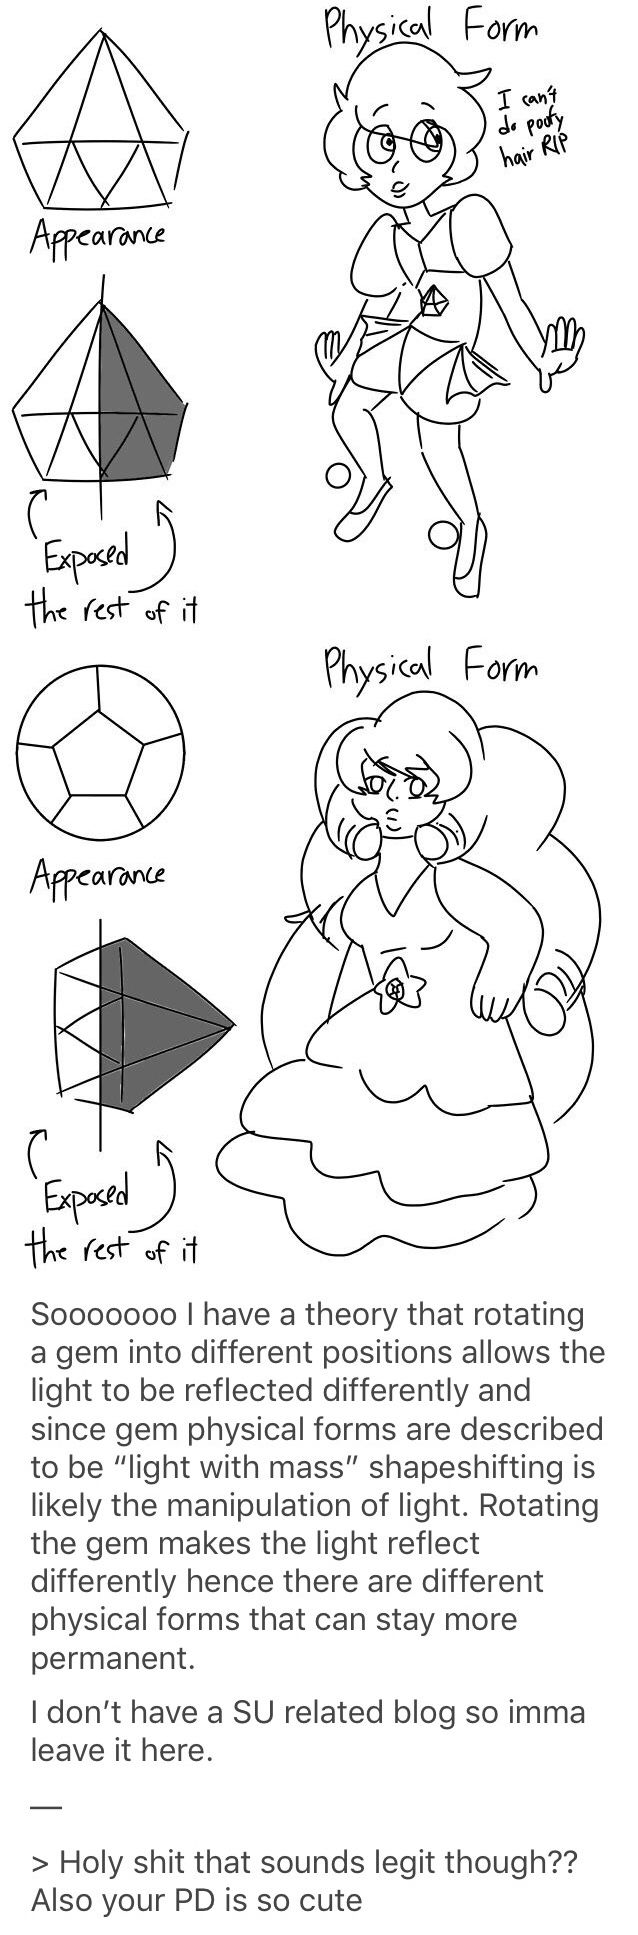 I totally buy this theory - Steven Universe - Rose Quartz